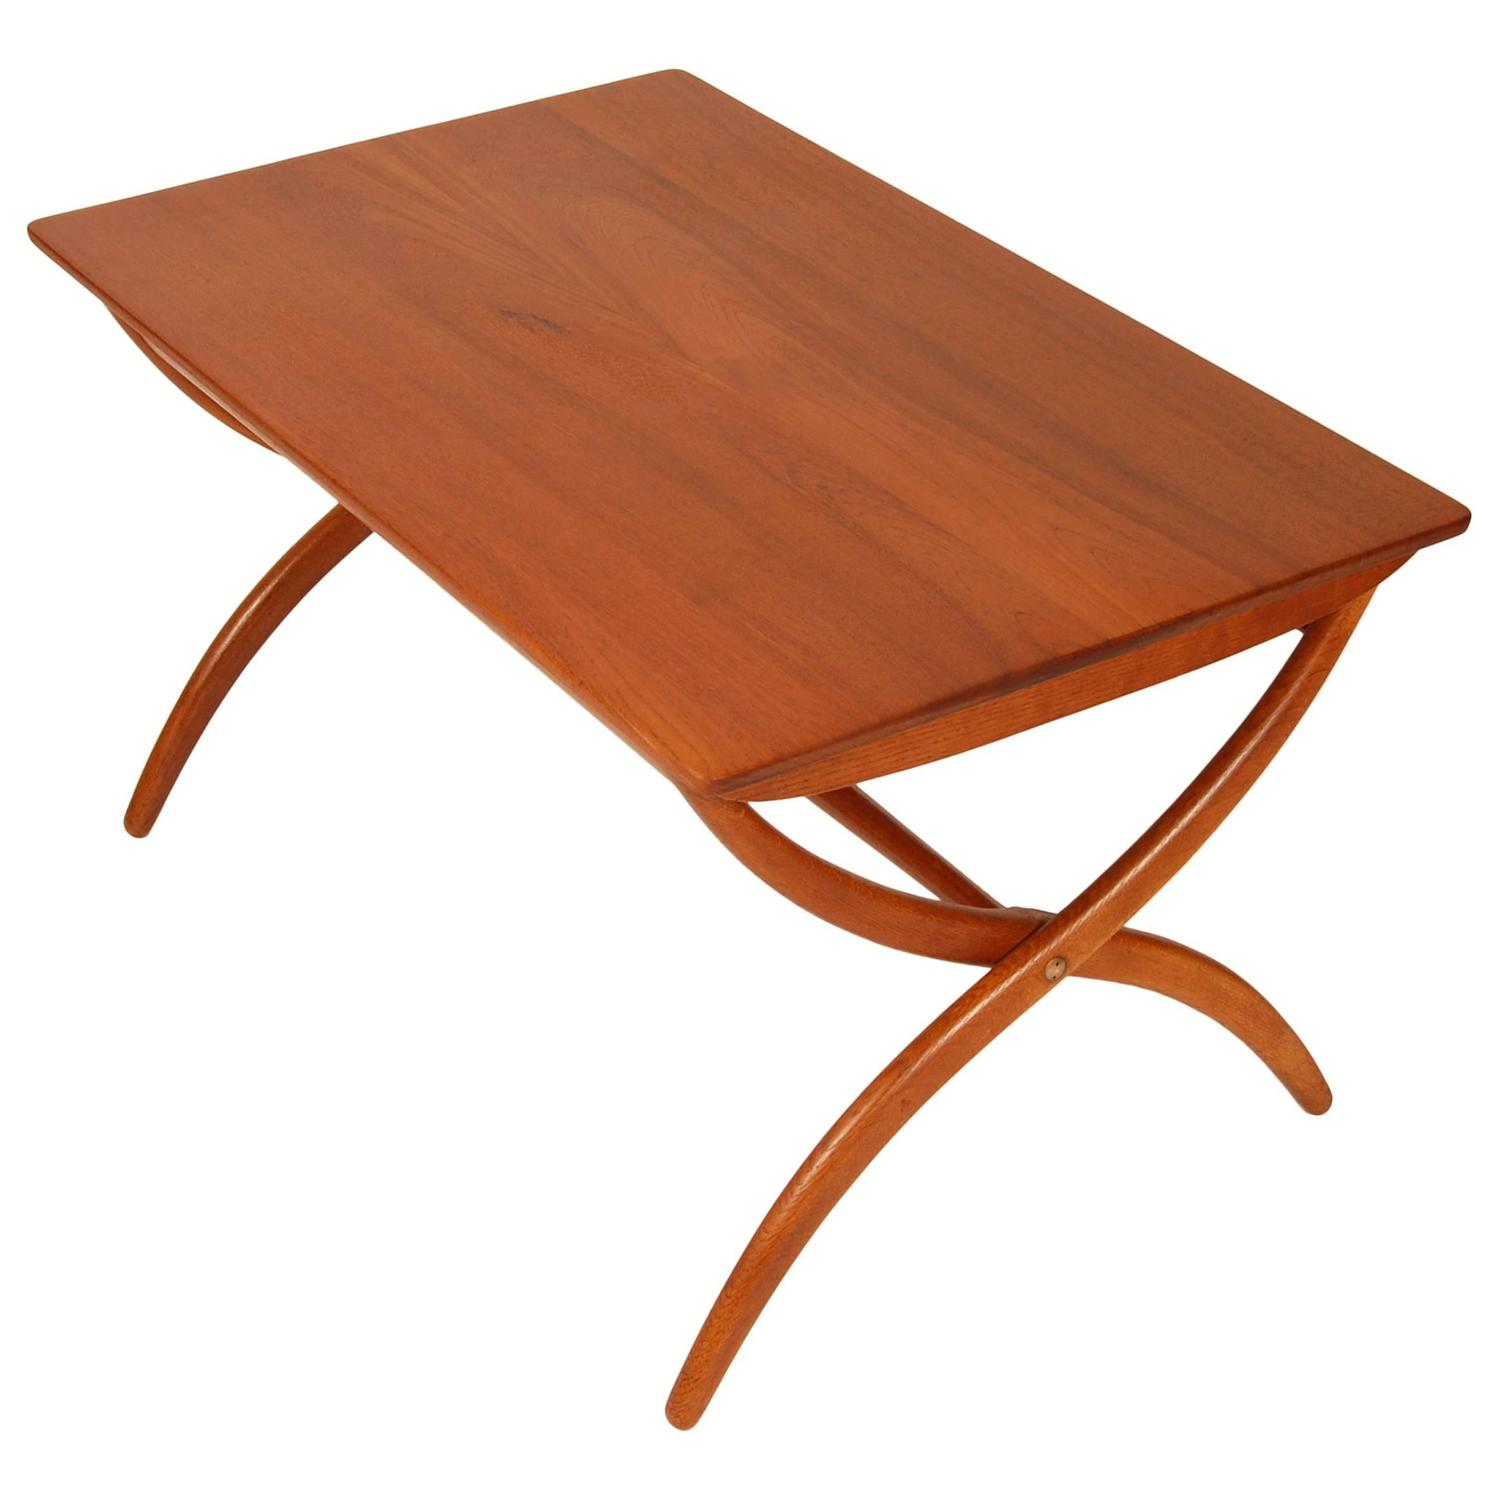 Ole wanscher adjustable coffee table for sale at 1stdibs for Adjustable coffee table